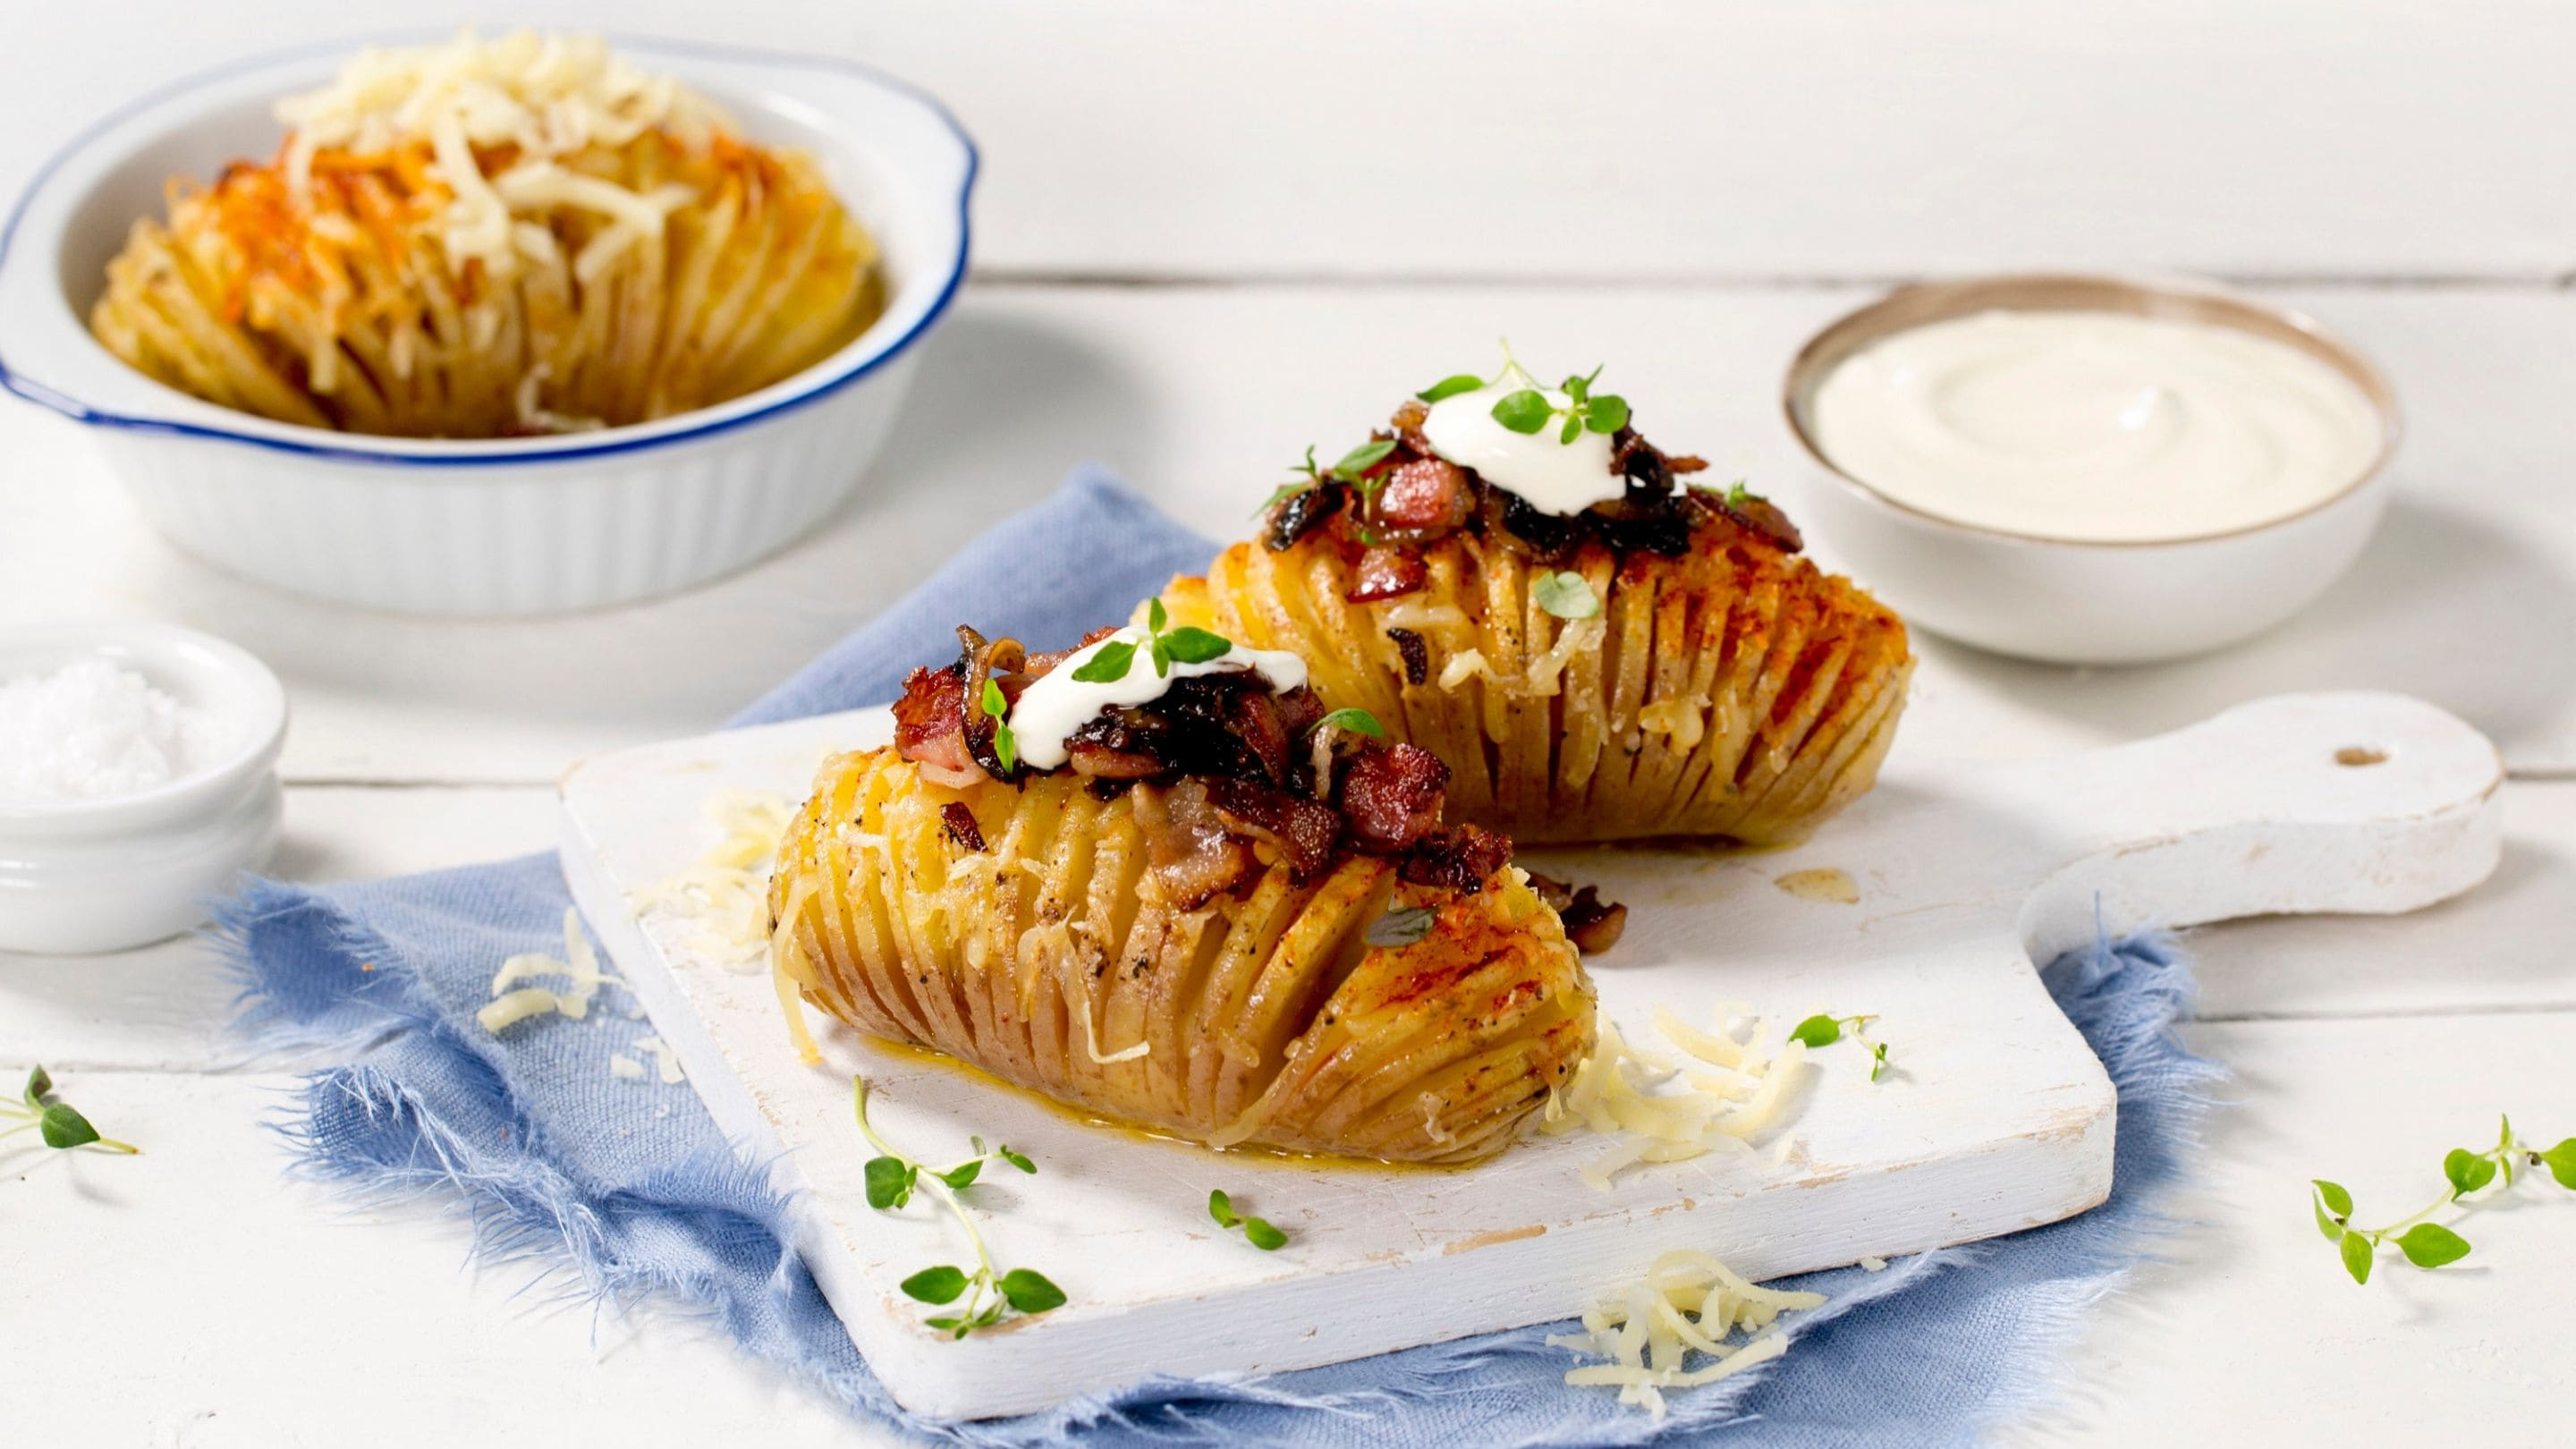 Hasselbackpotet med ost, bacon og sopp